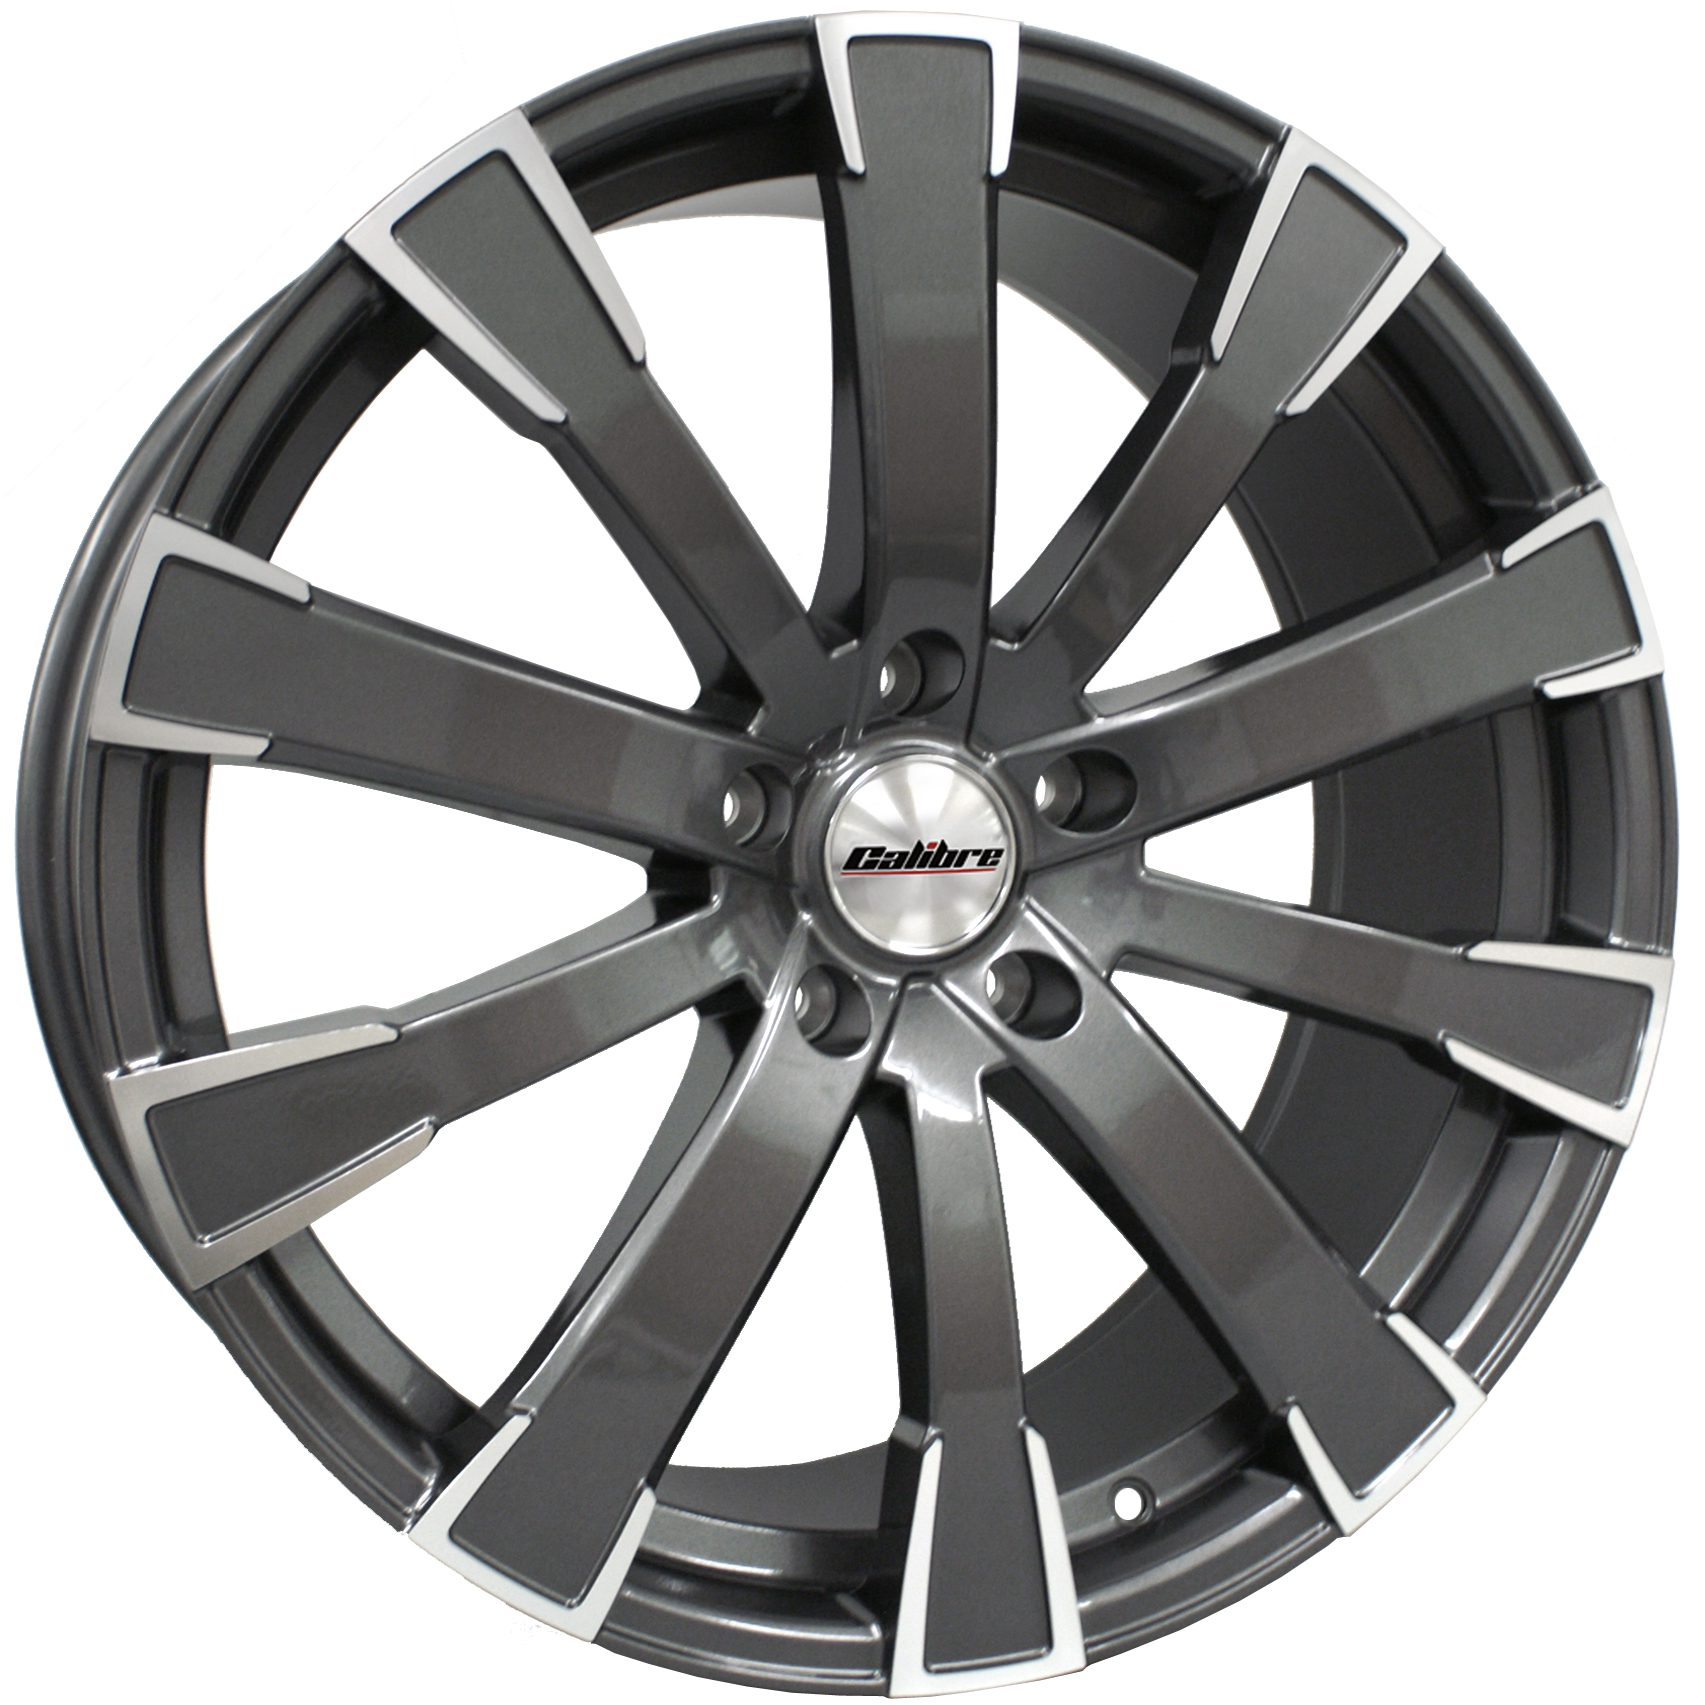 "Rim Calibre Manhattan 8.5x20"" Gunmetal Polished Face 5x120 ET35"